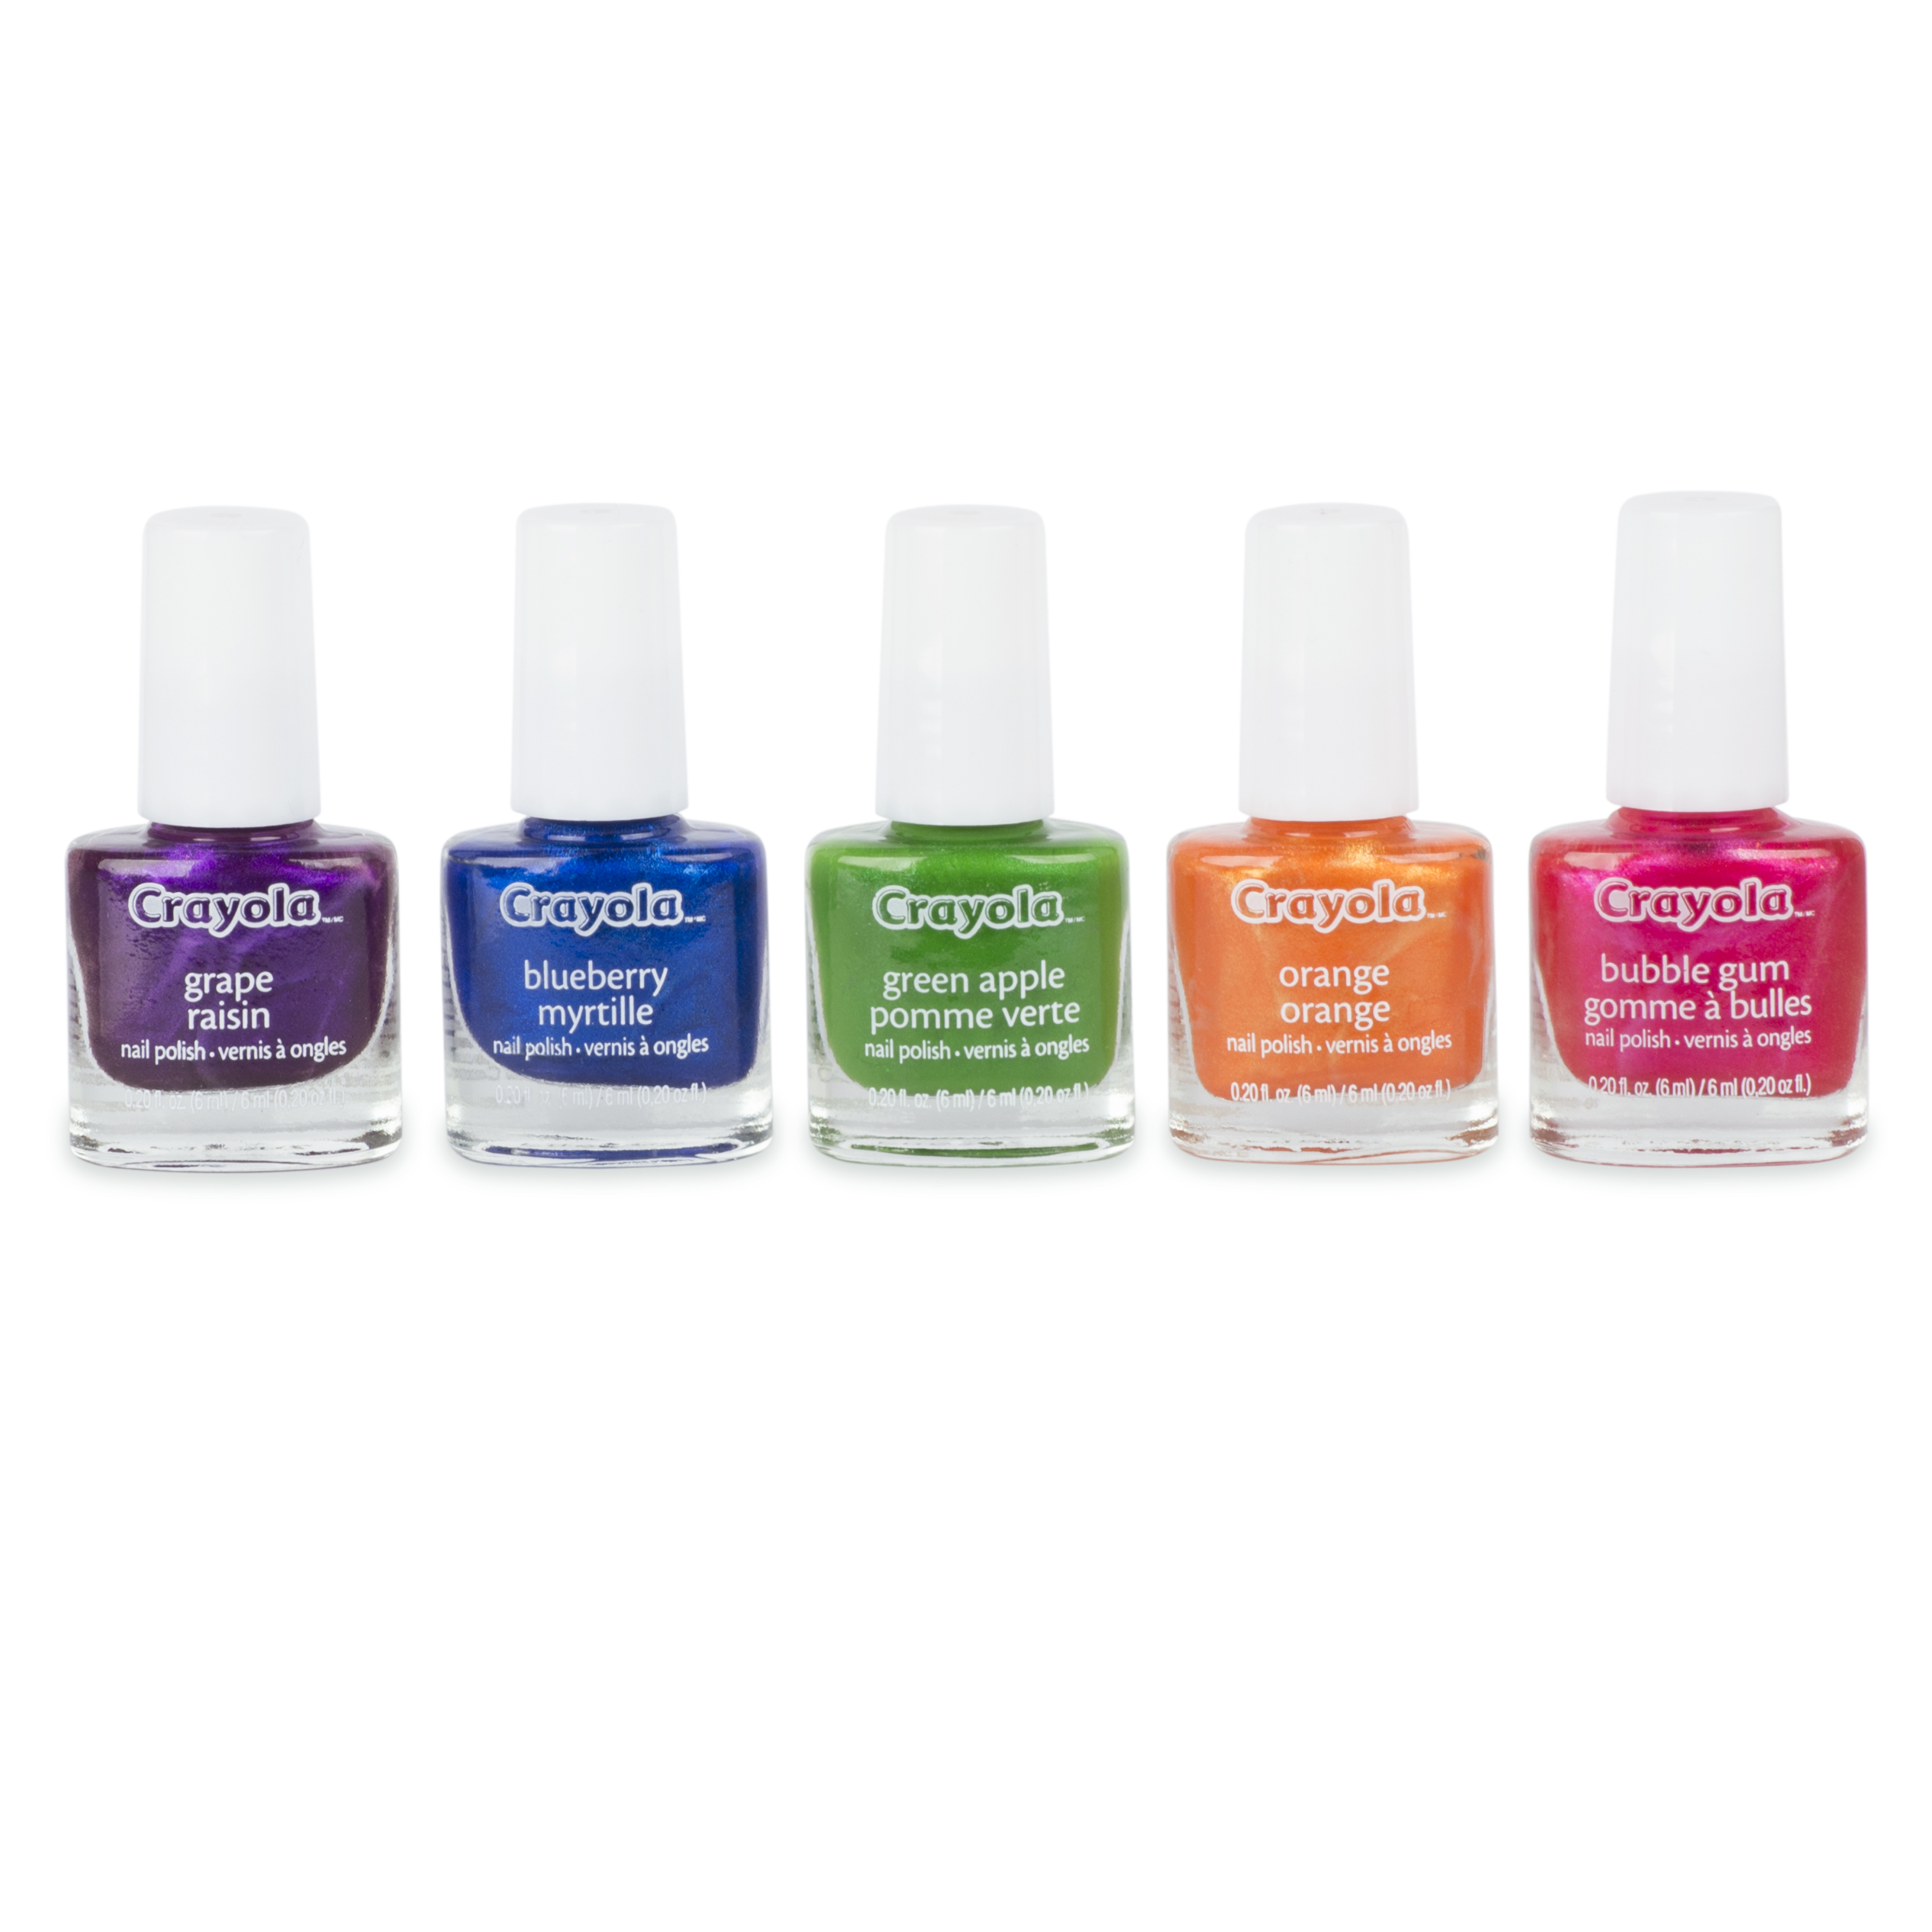 Fing'rs Crayola Scented Nail Polish, 0.20 fl oz, 5 ct